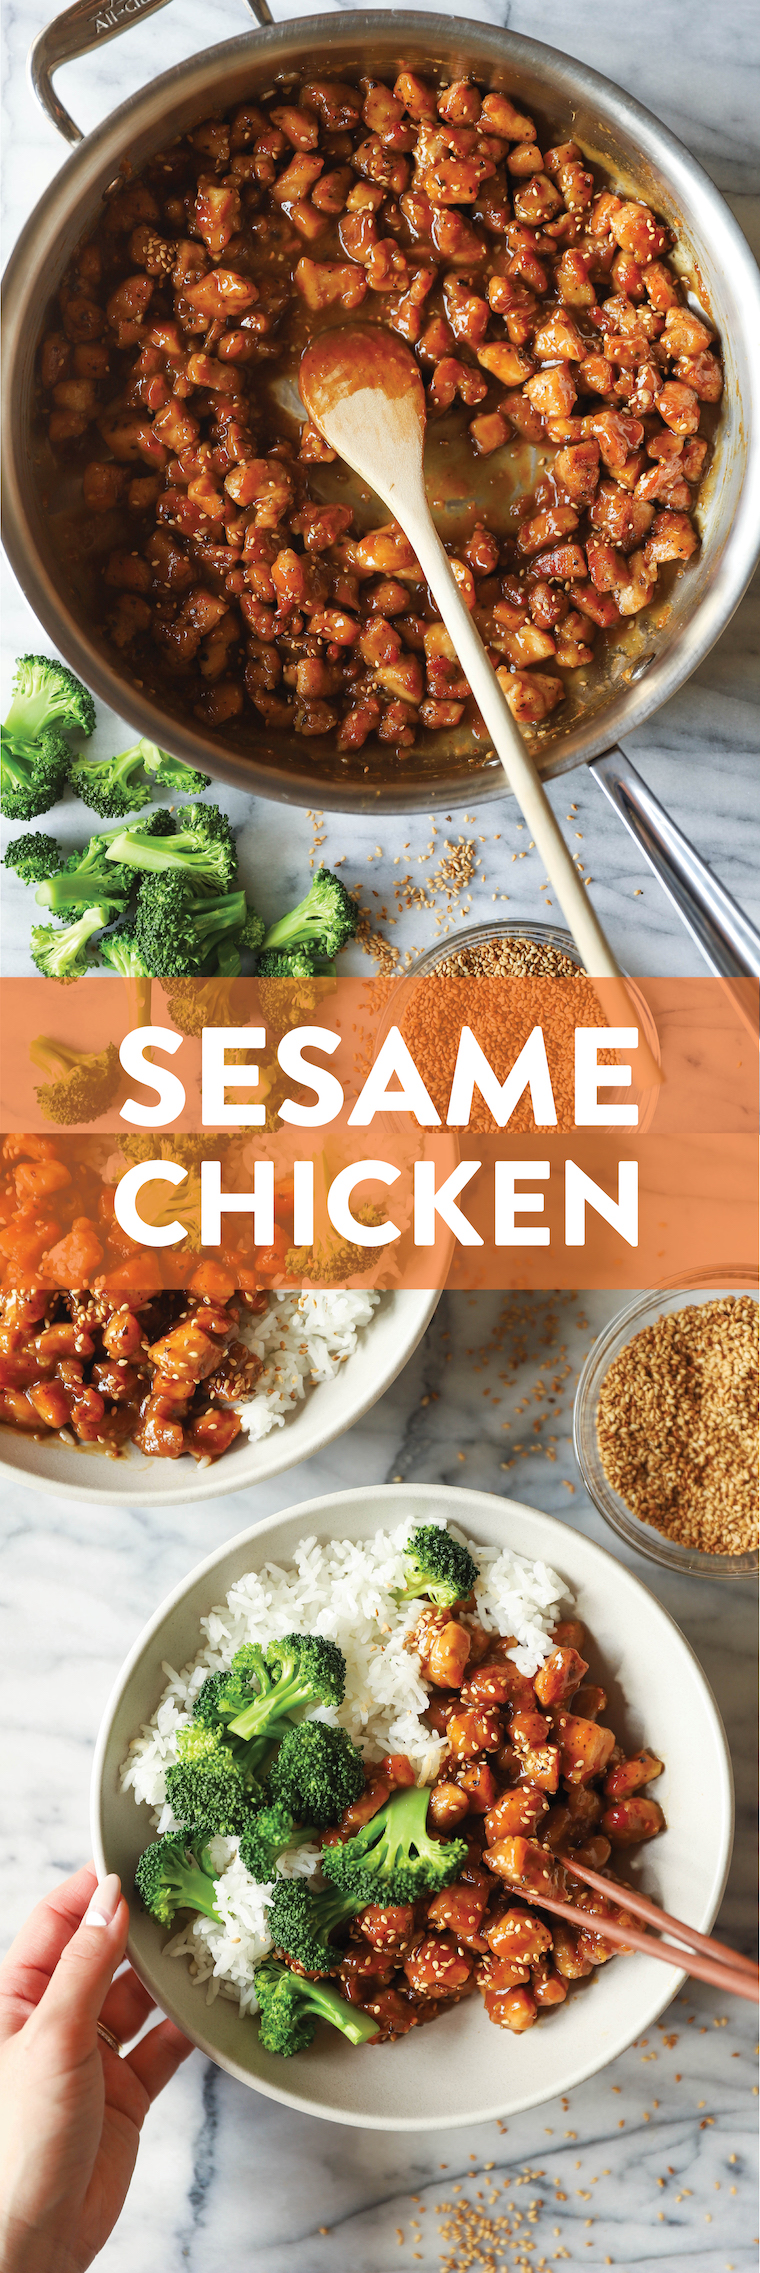 Sesame Chicken Bowls - Super saucy, crisp-tender sesame chicken! 1000x better than takeout, made in 30min or less. Serve with rice and broccoli. SO SO GOOD.